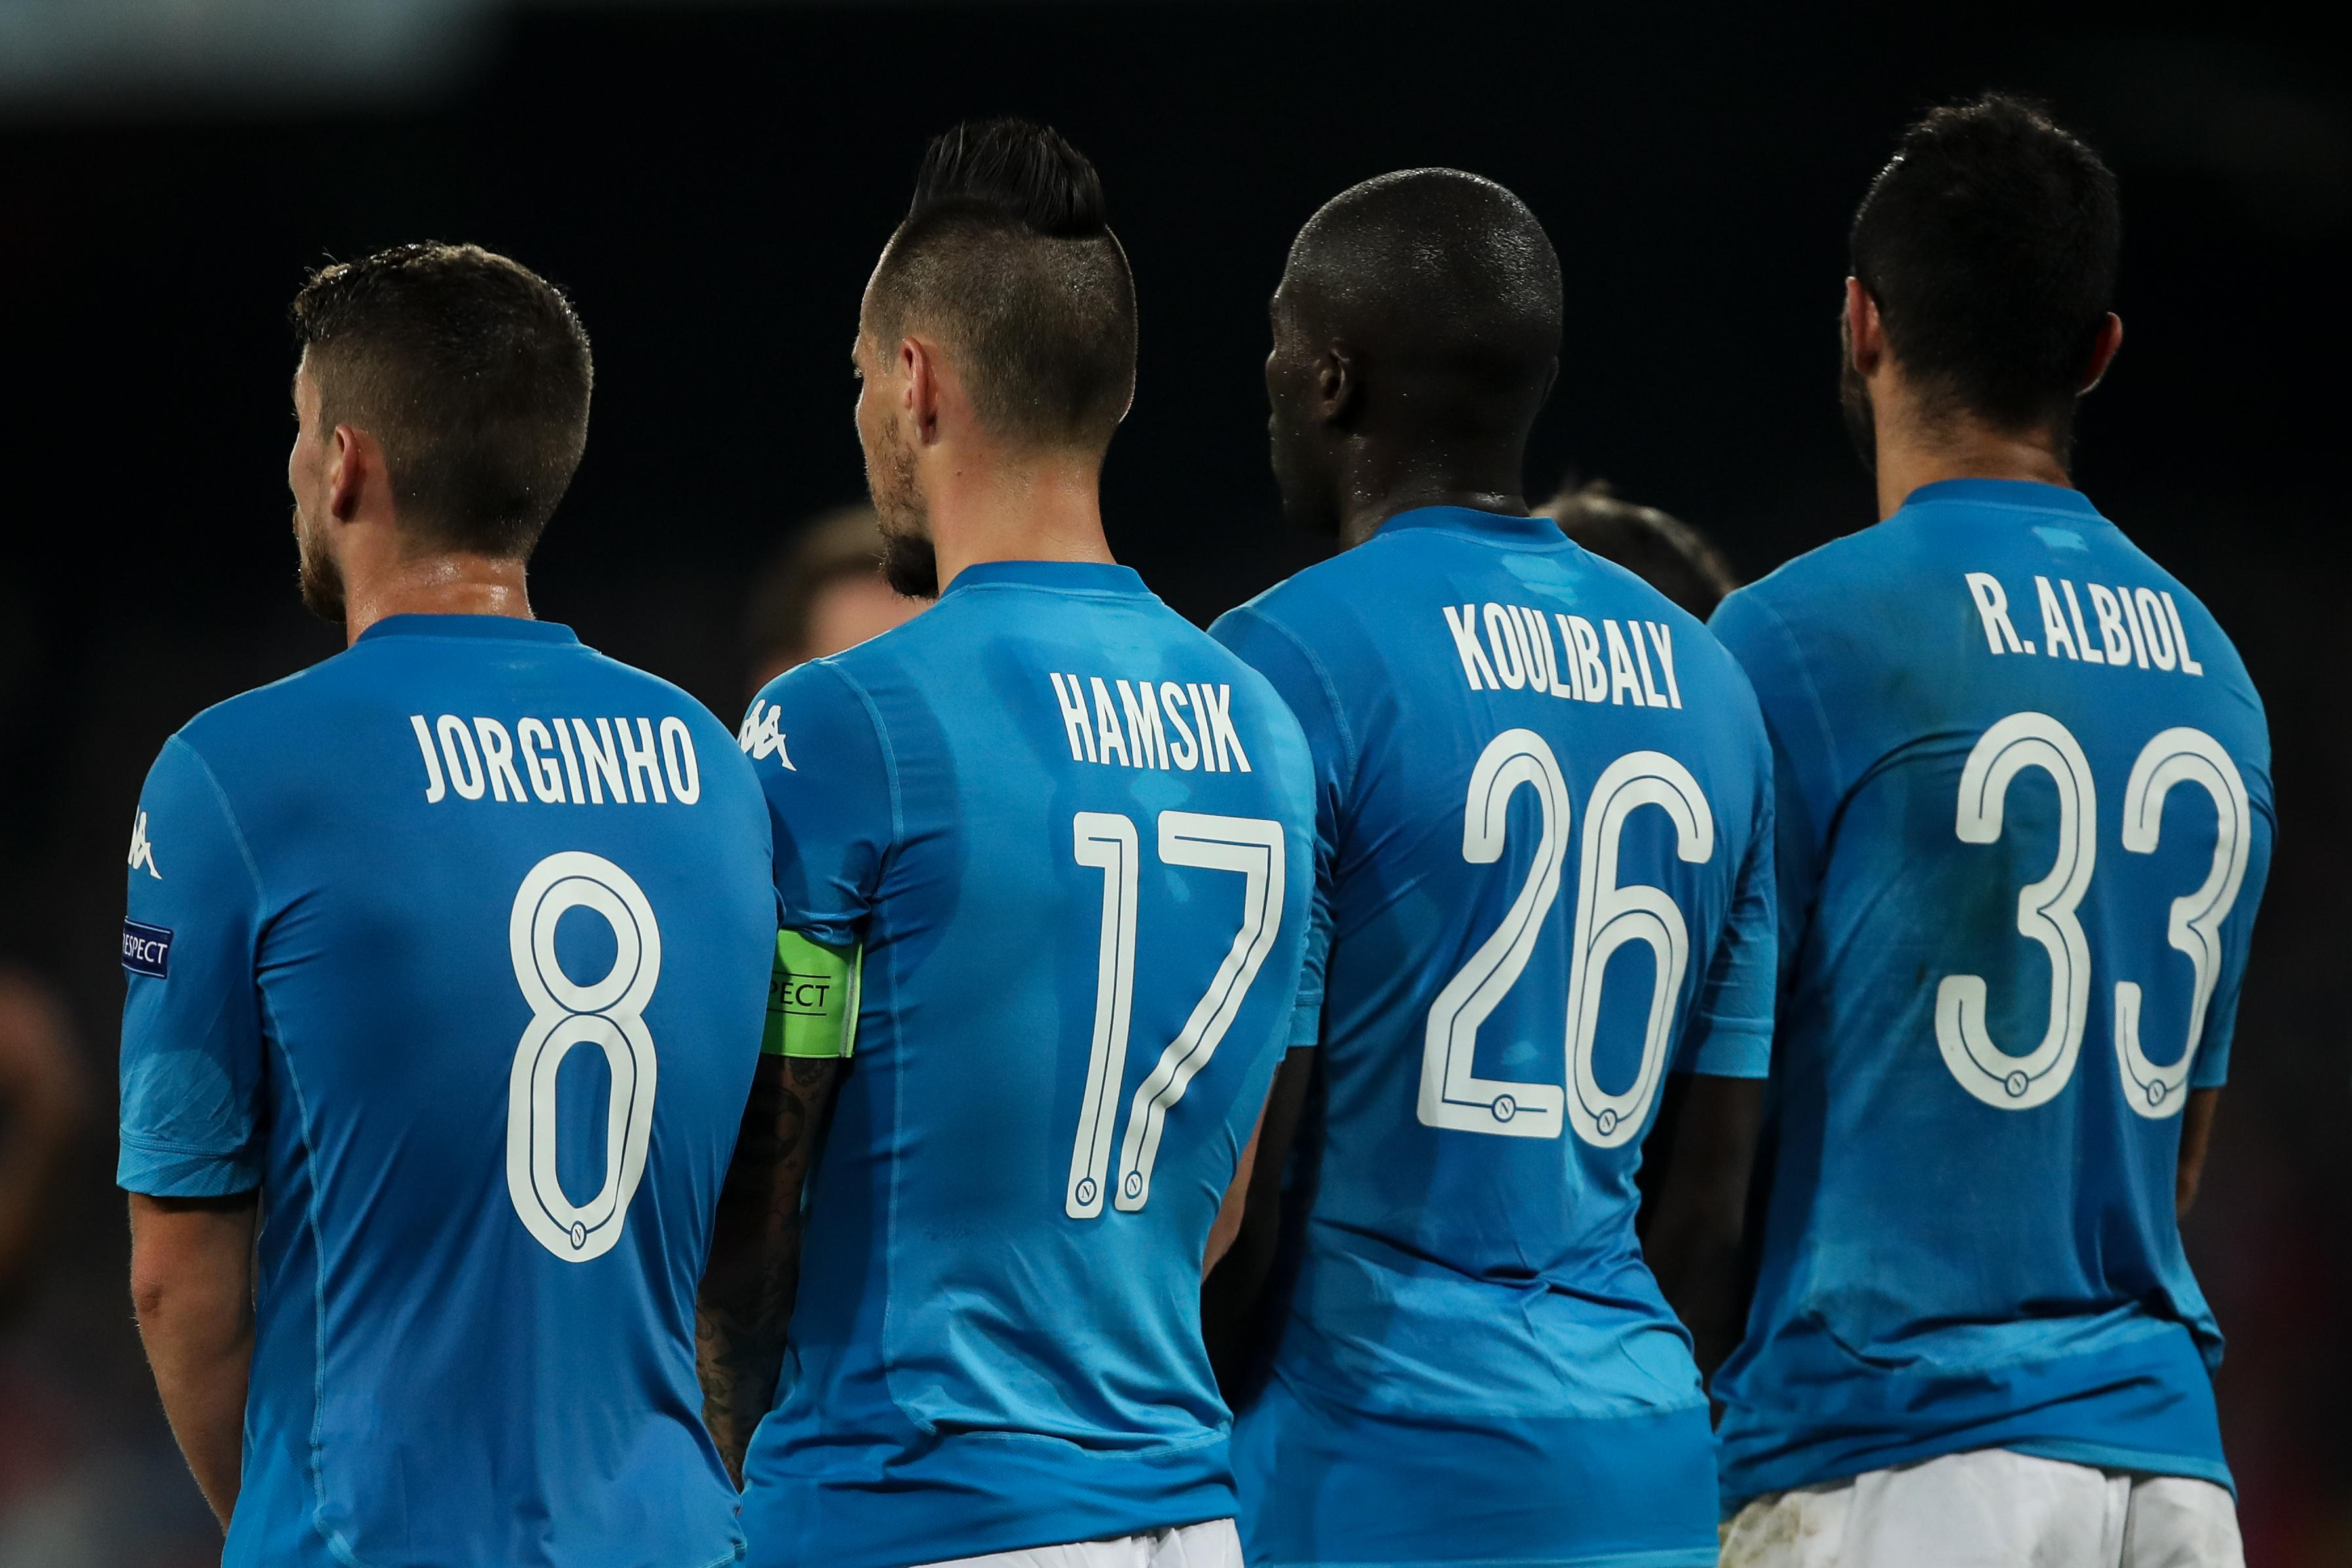 Jorginho has been key to Napoli's brilliant season so far